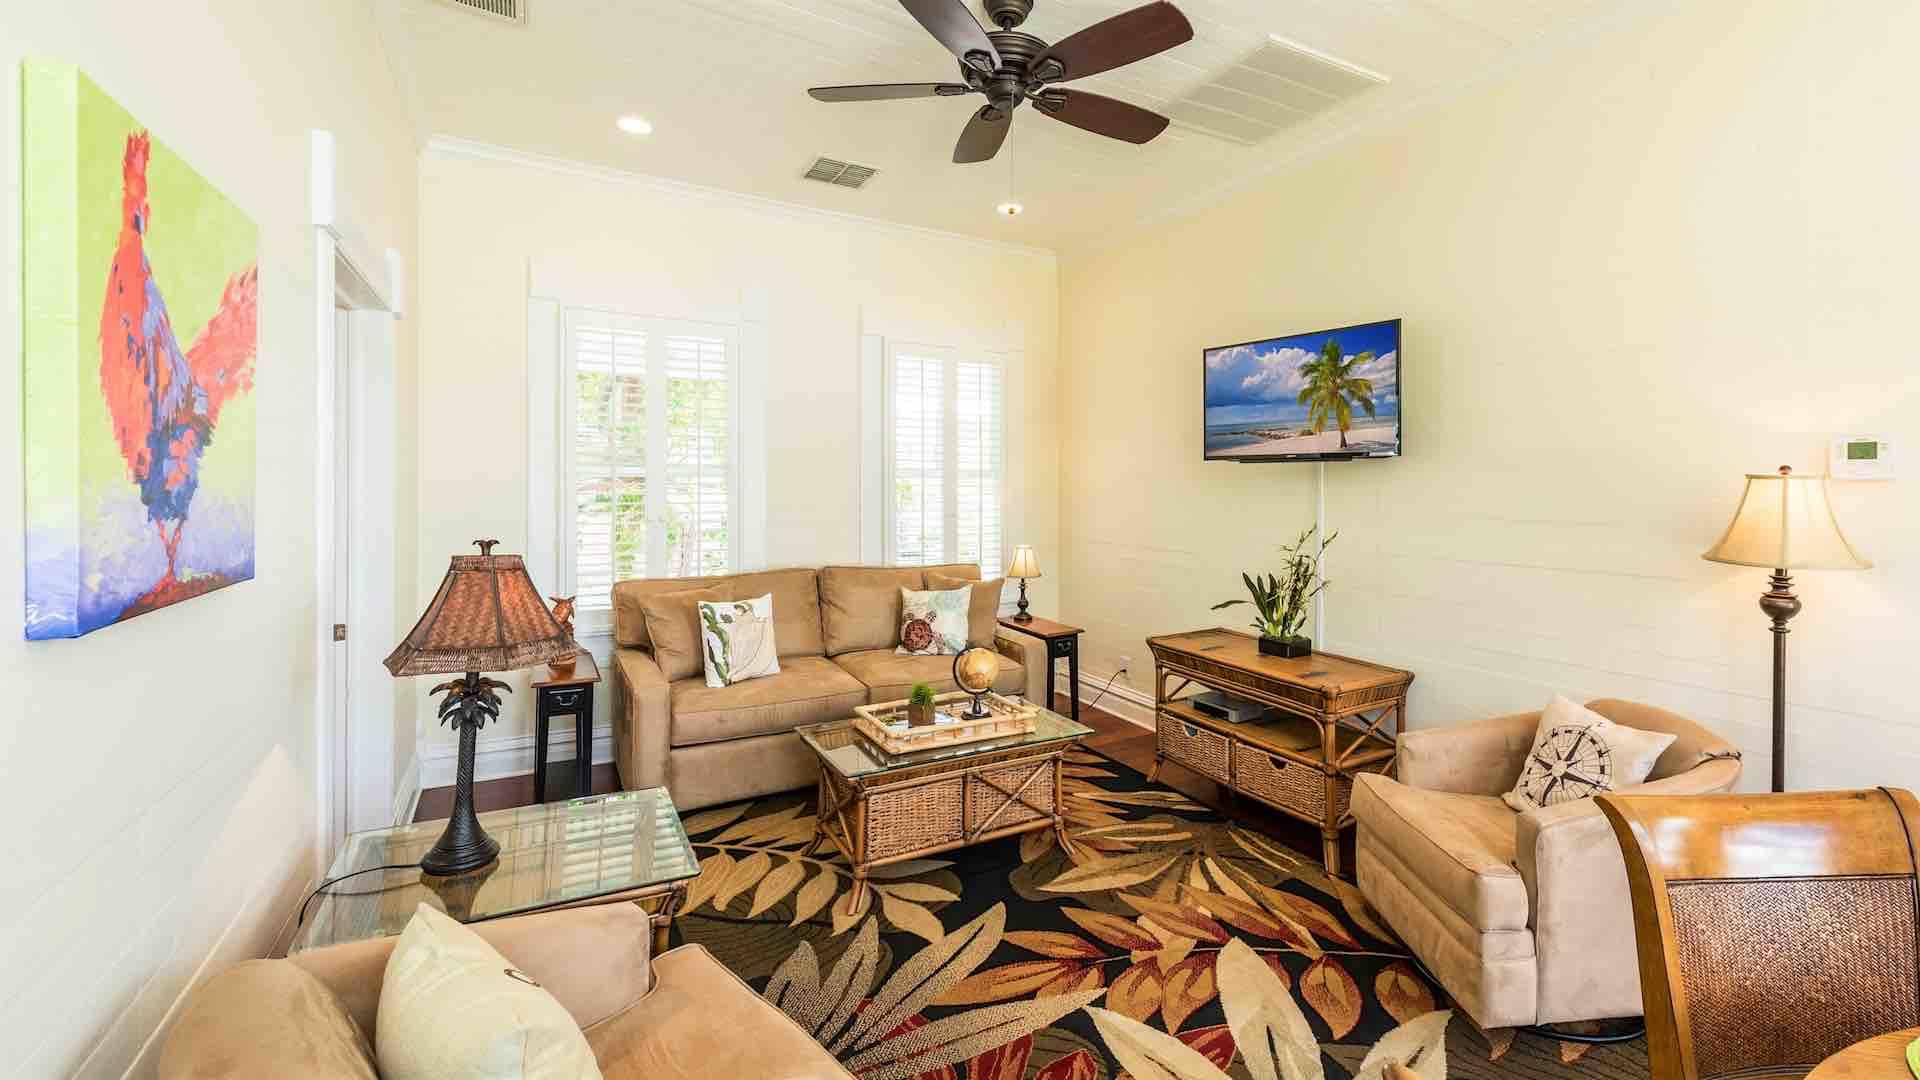 The upstairs condo has three bedrooms and two bathrooms...